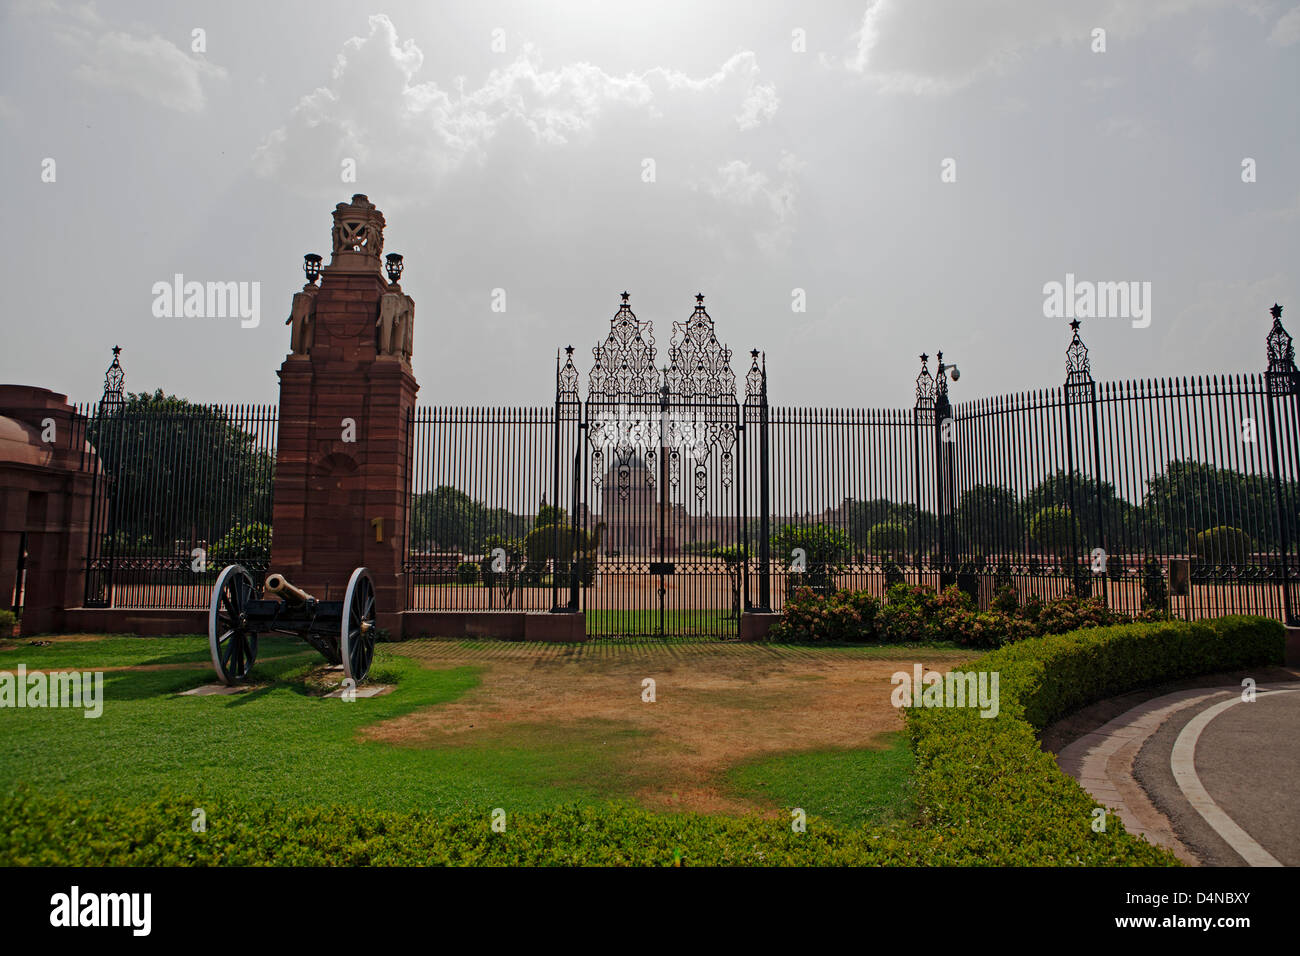 Rashtrapati Bhavan (Hindi for President House) is the official home of the President of India. New Delhi, India - Stock Image